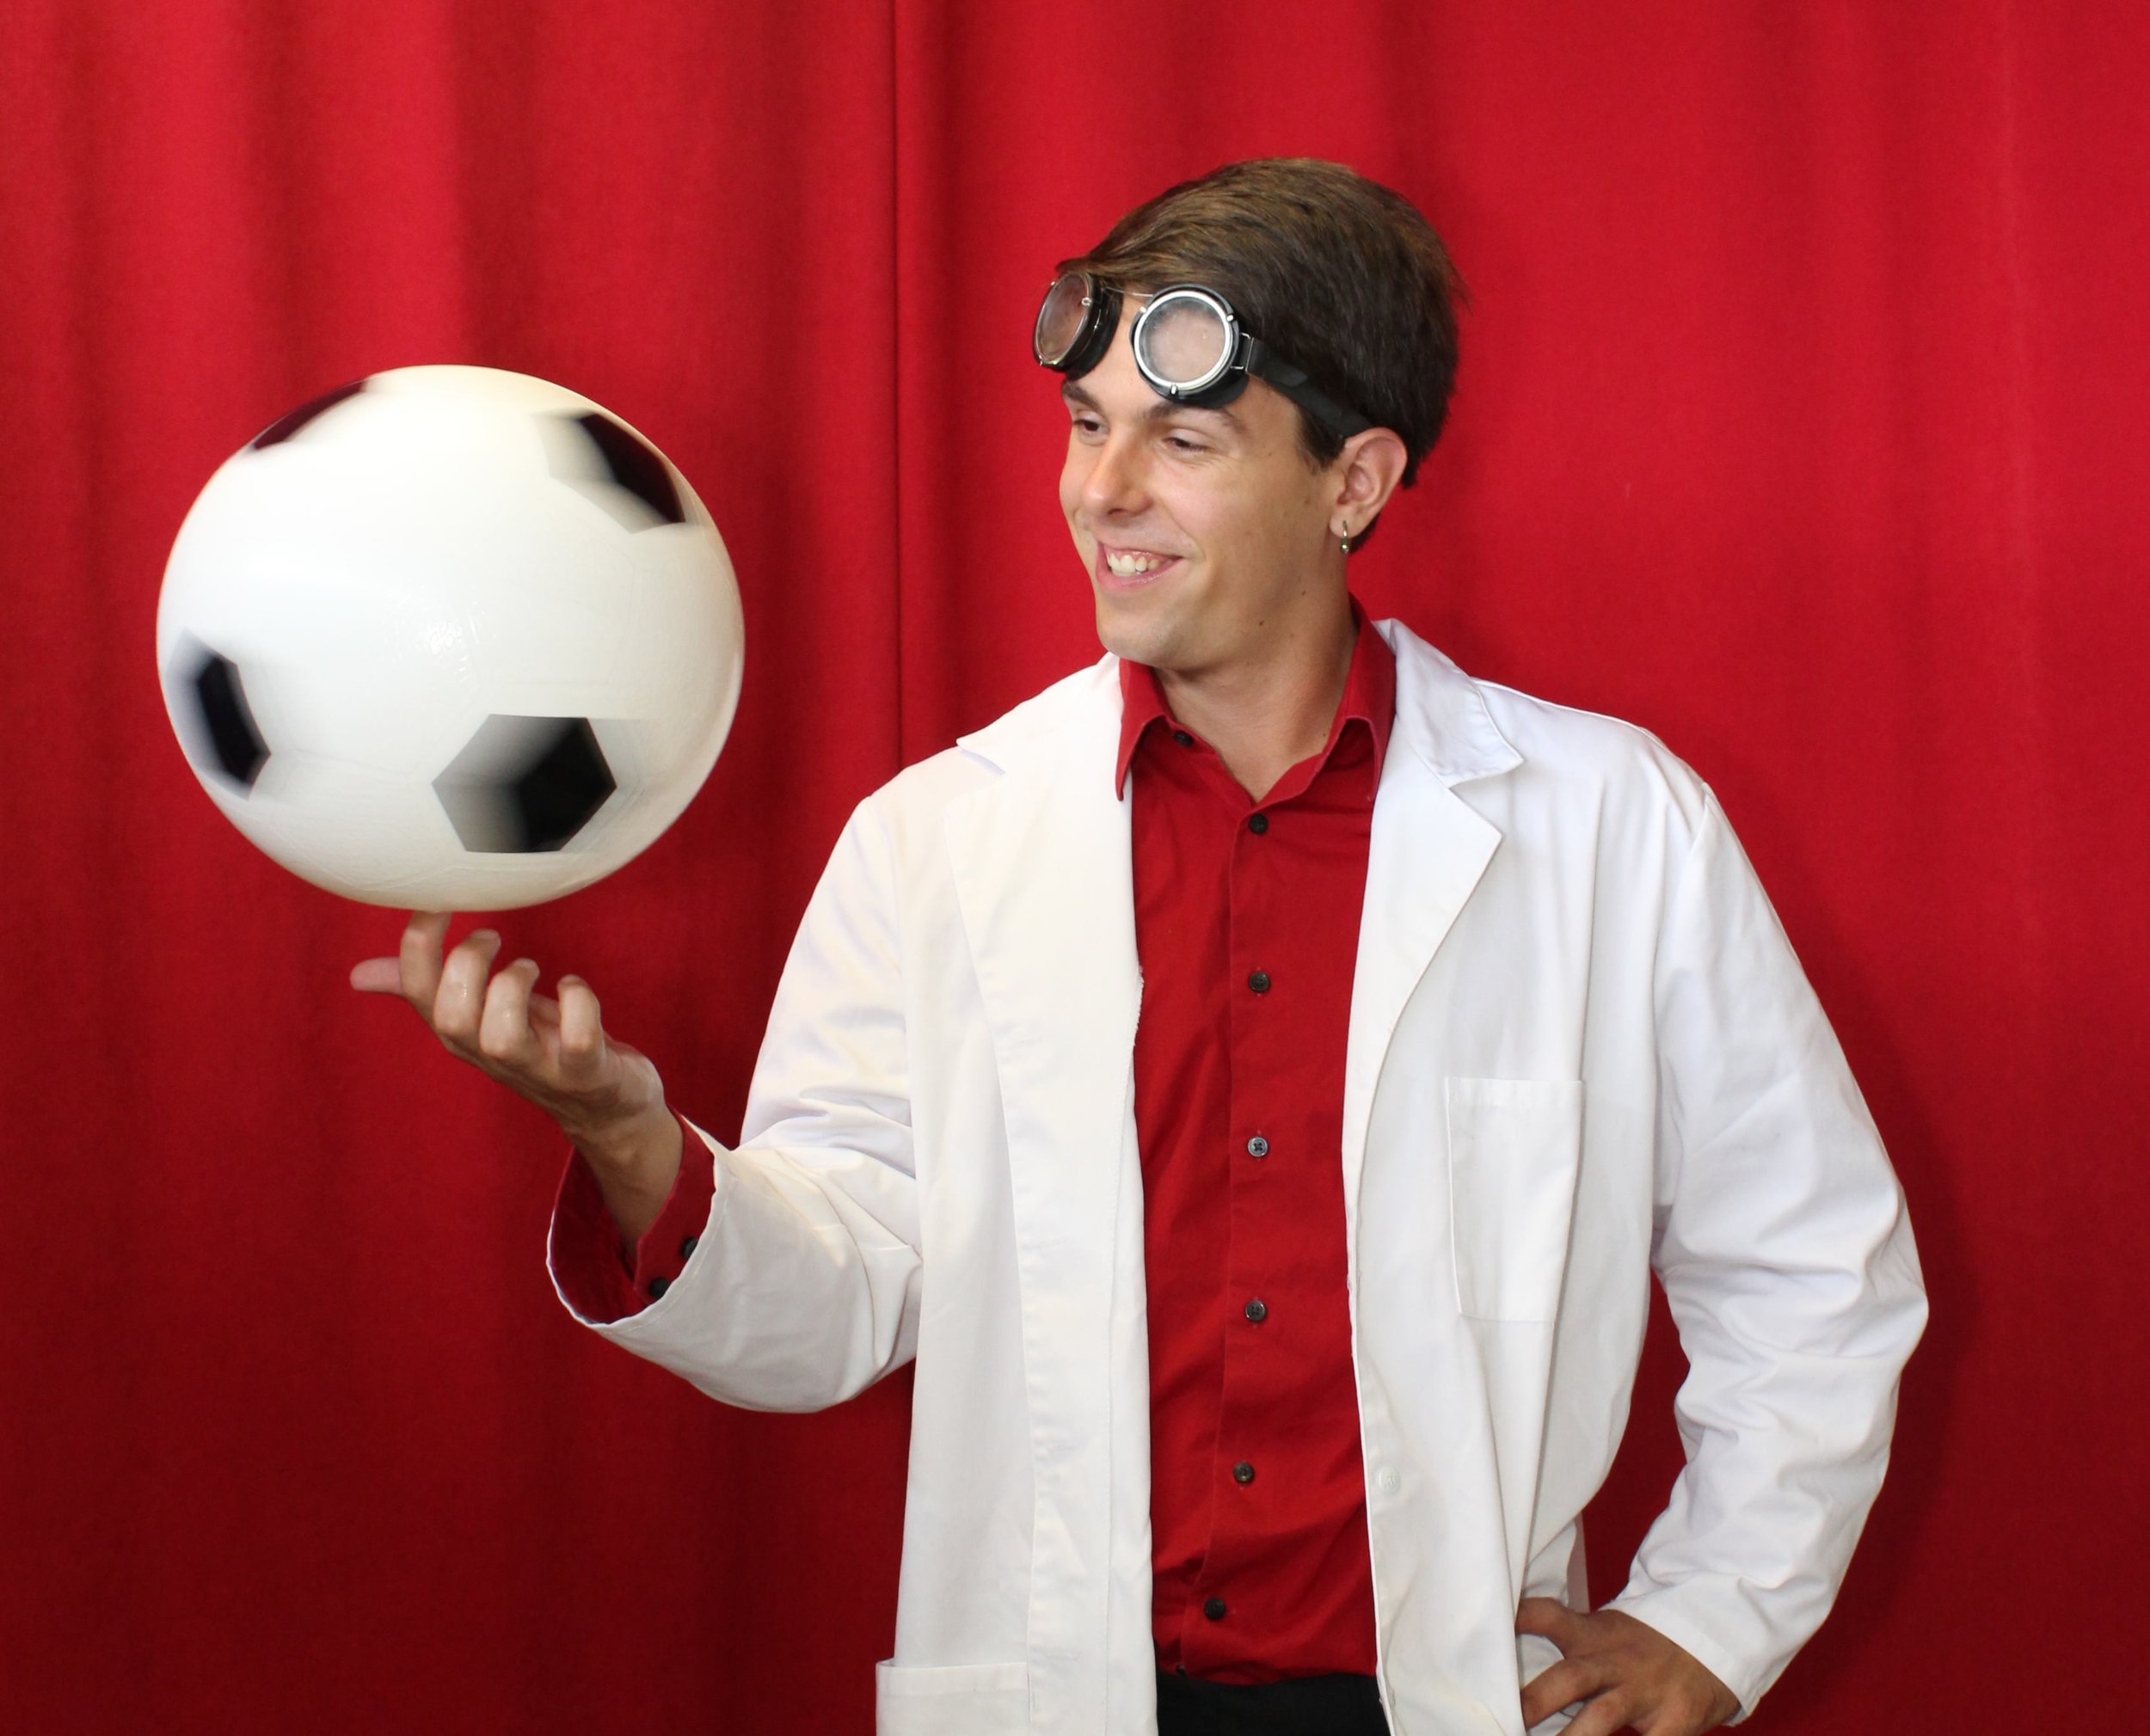 Science of the Circus! - Why does a spinning ball balance better than one that's not? Why does a Whip make that cracking sound and how? Find out this and more in this educational show where we explain the science, math, and phyics behind the circus!